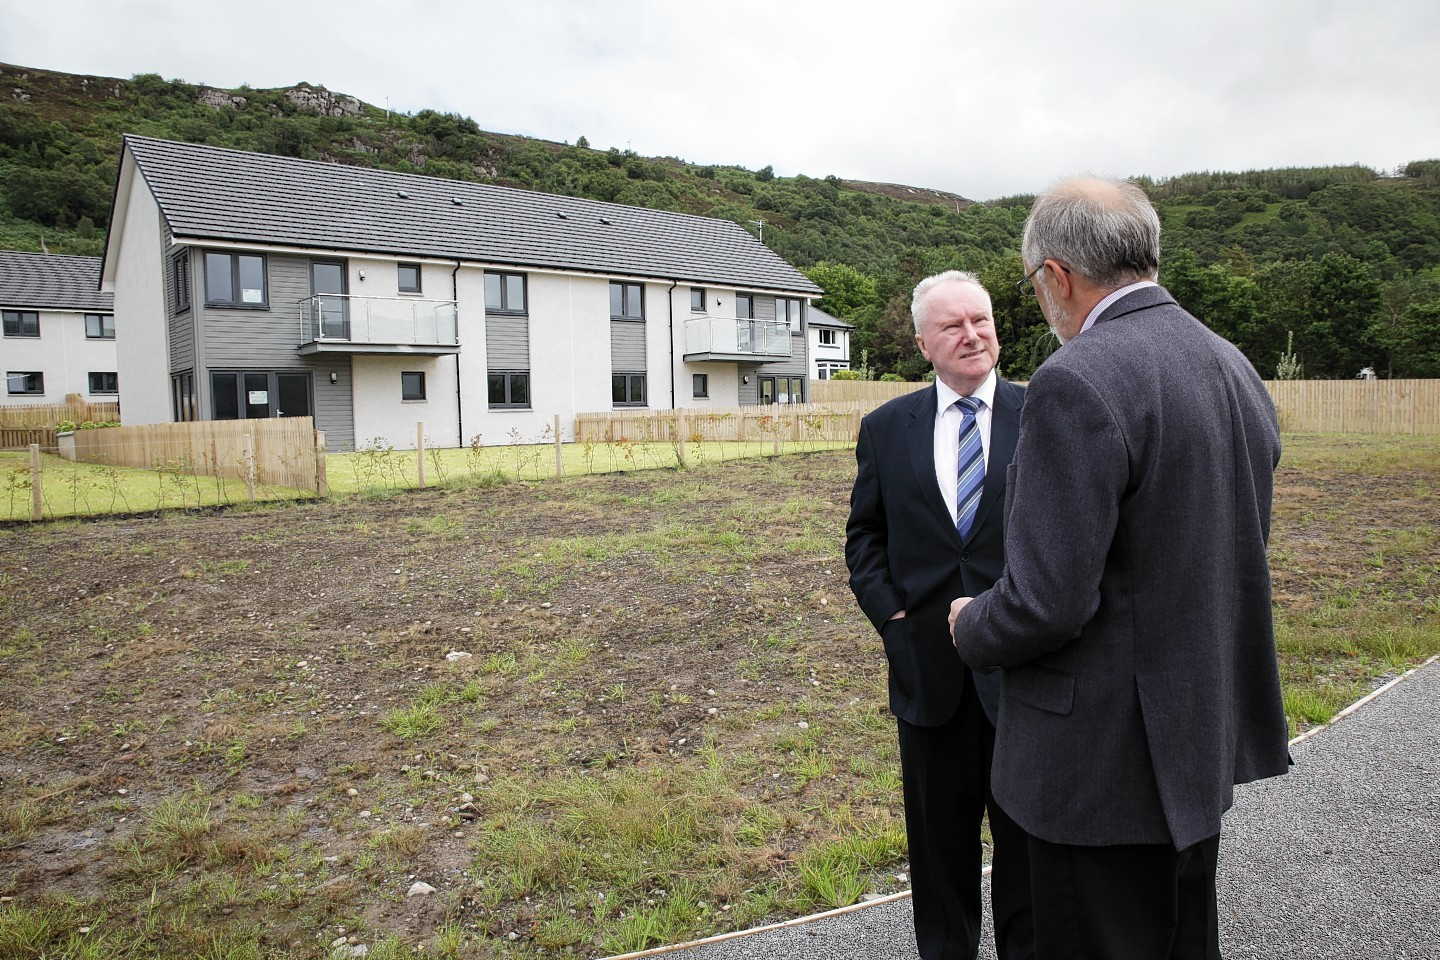 Alex Neil MSP visits Lochside Court, Ullapool